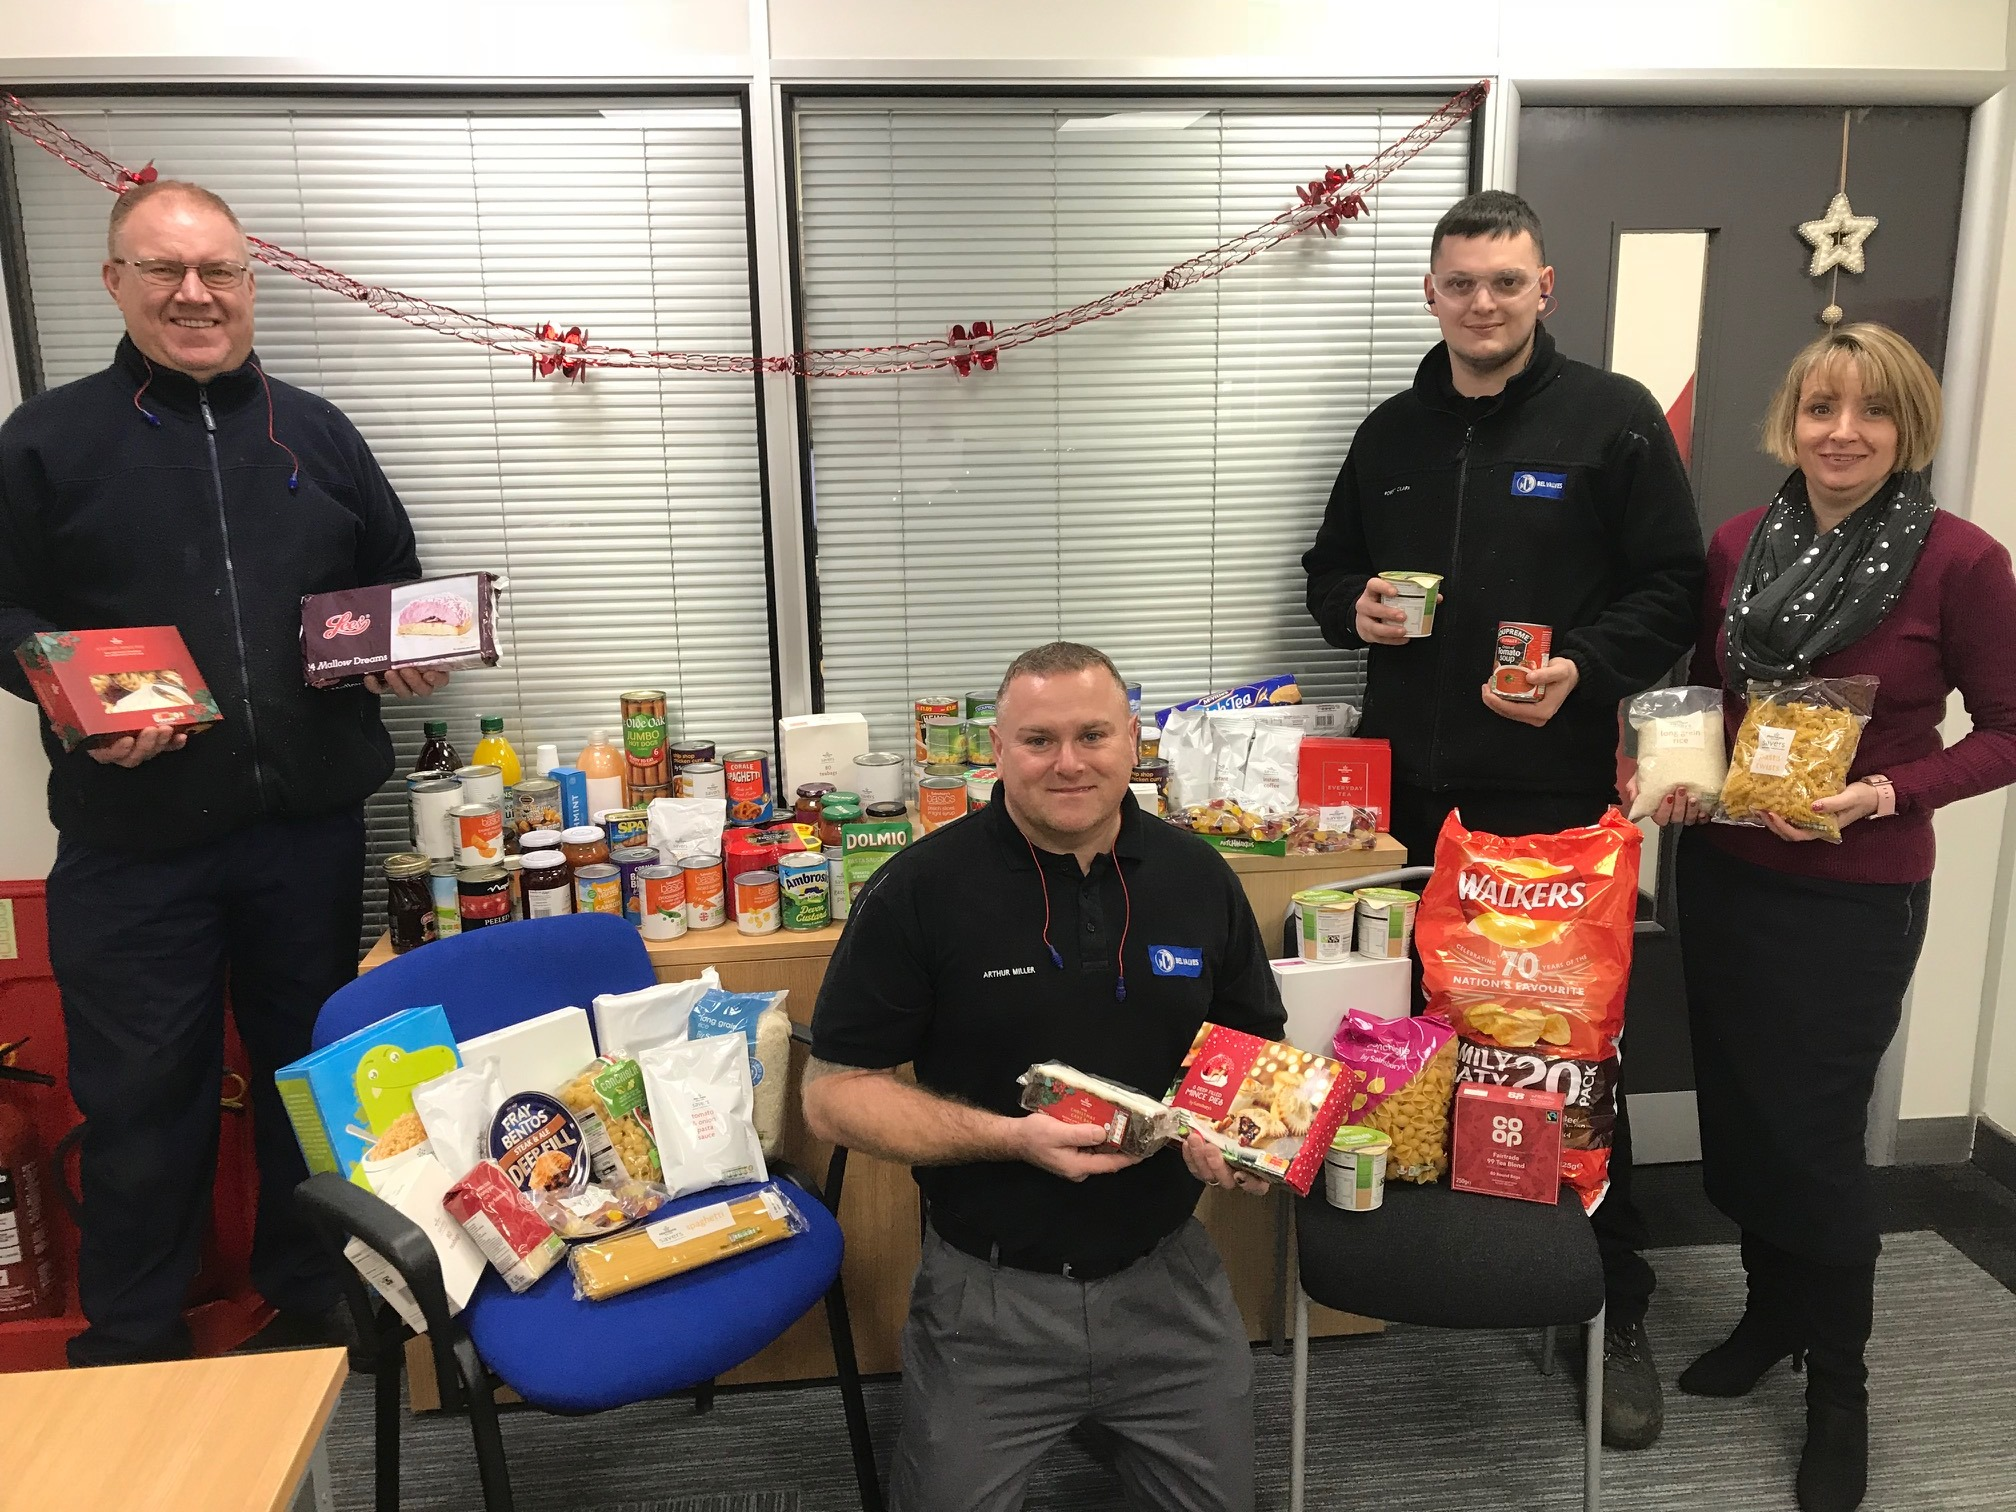 BEL Valves staff with food collected for local Newcastle foodbank